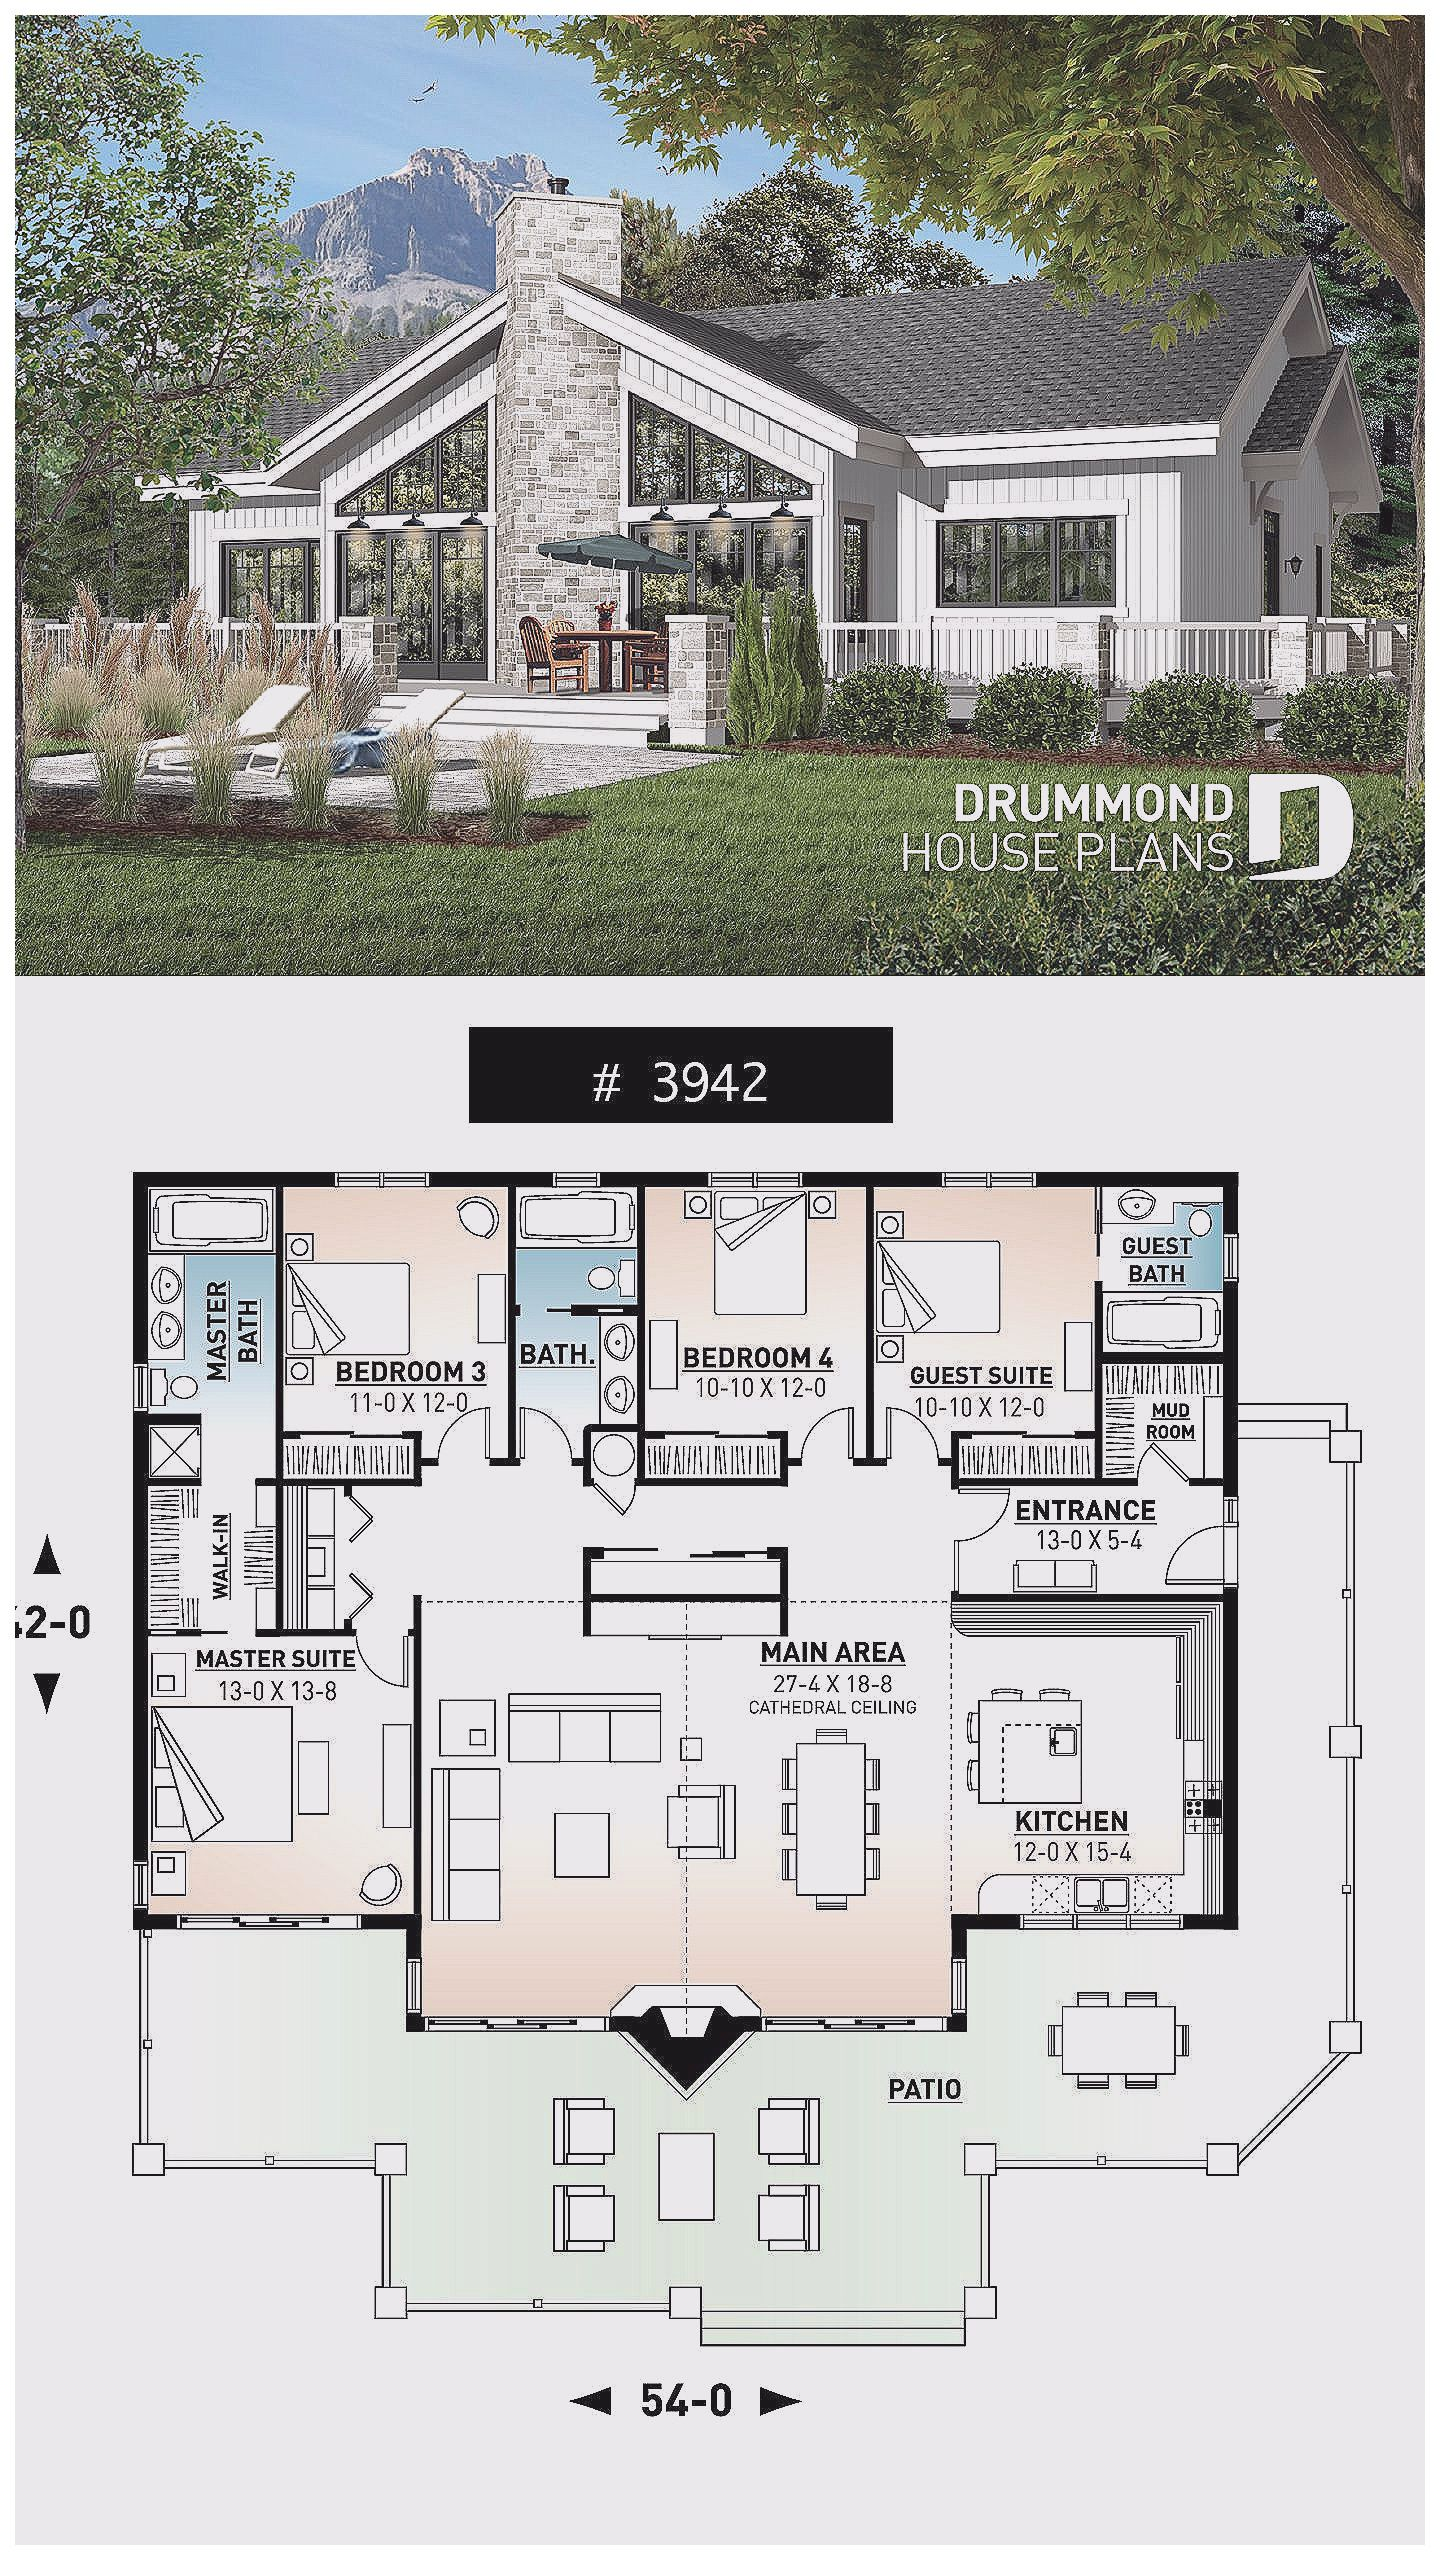 Large Family Home Plans To Build A Large Family Home You Should First Learn How To Build A Home That Has Lo House Blueprints Denah Lantai Rumah Denah Lantai